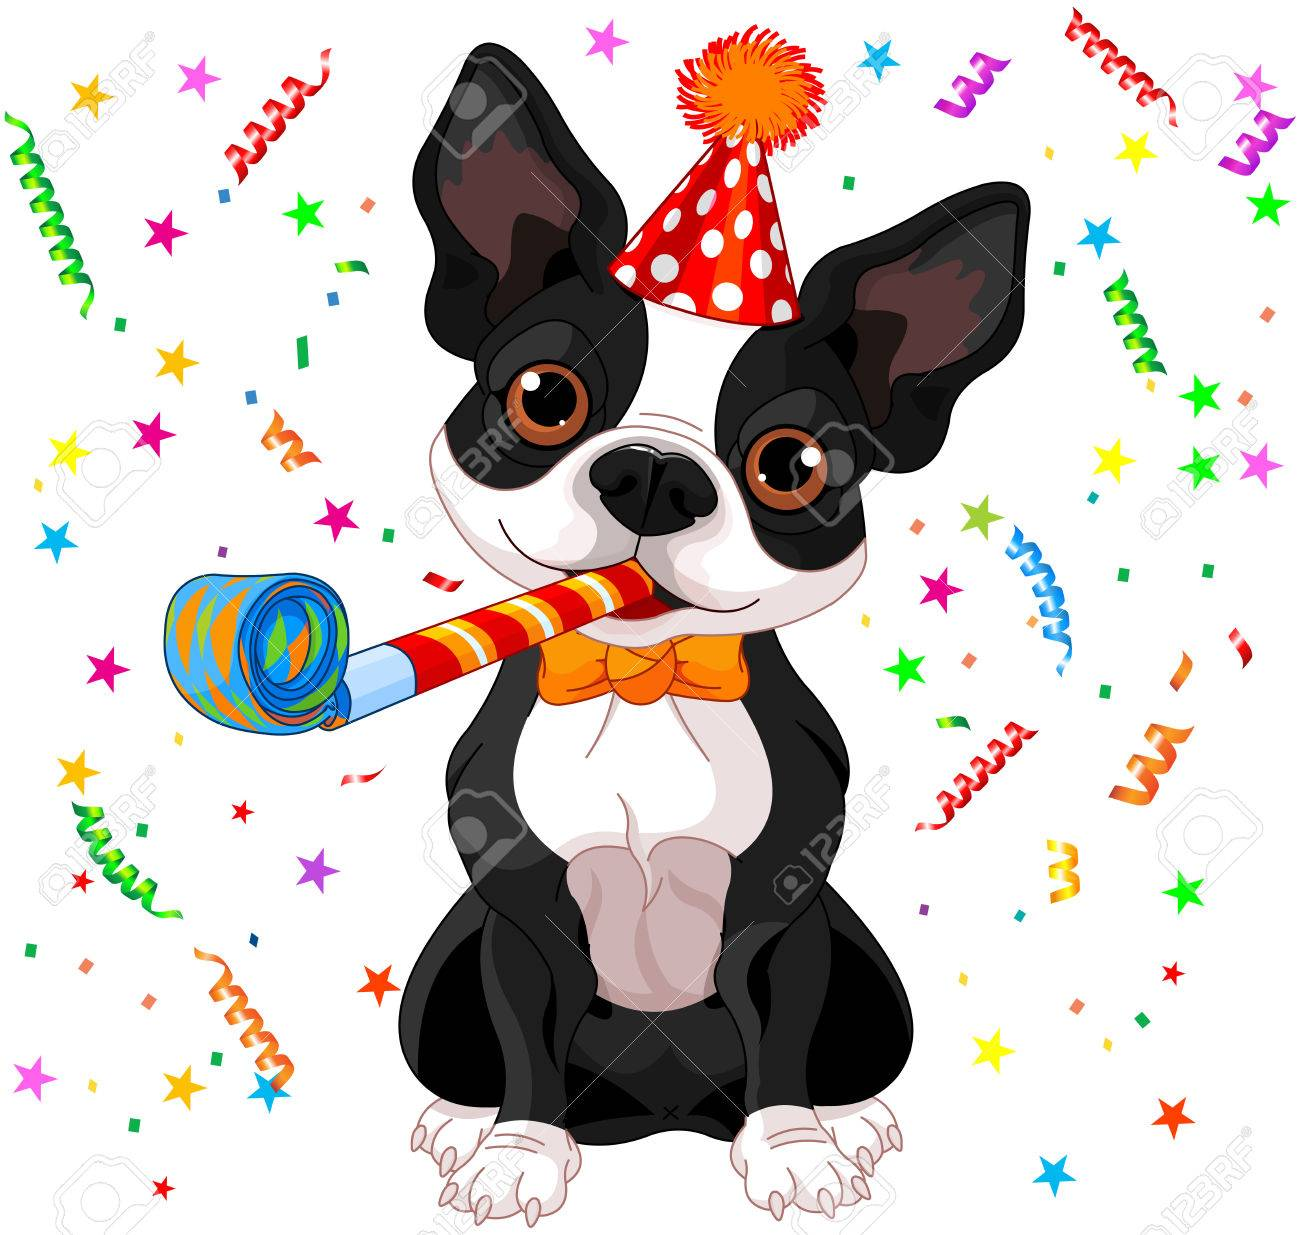 Chiot craintif/peureux 35588778-illustration-of-cute-boston-terrier-celebrating